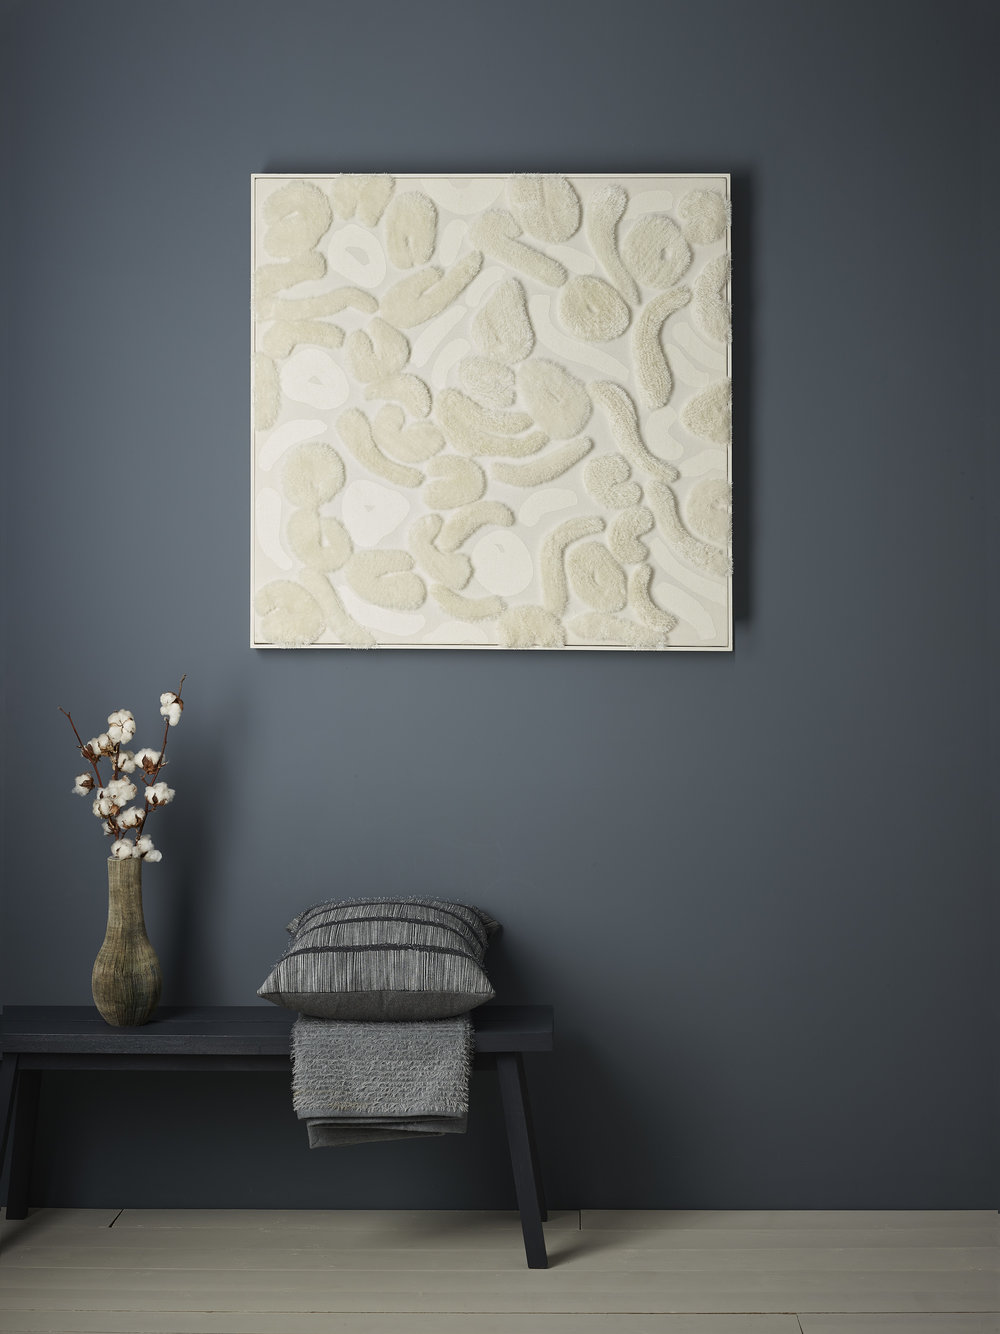 Anna Gravelle's 'Aerial Pearl' wall art with soft furnishings ©Anna Gravelle